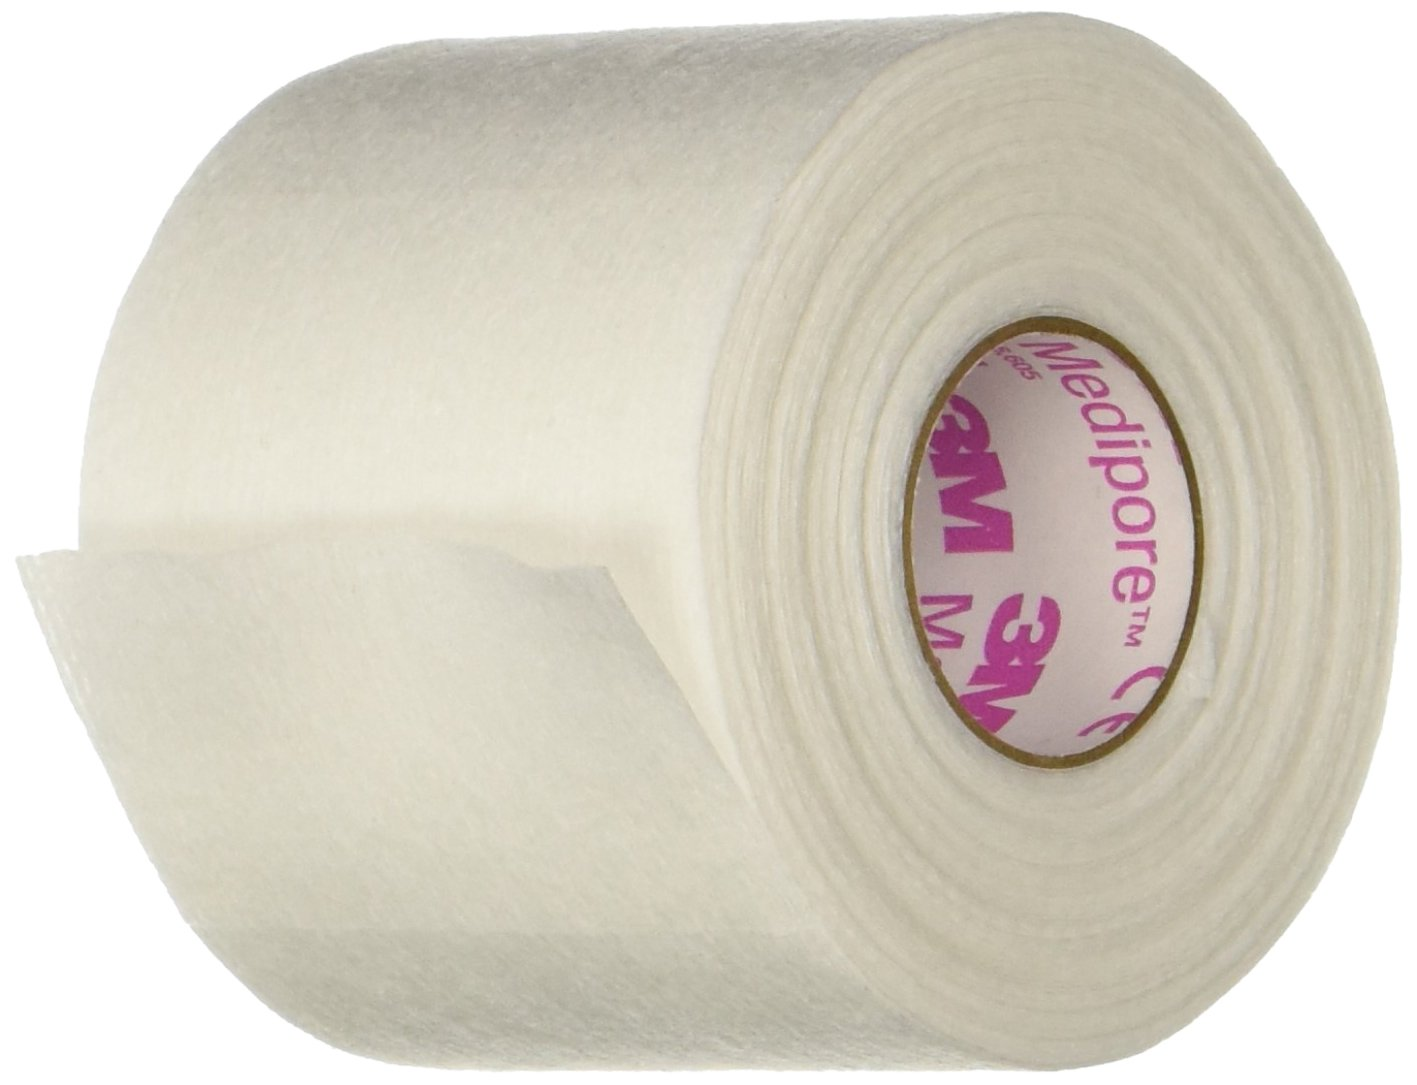 3M Health Care 2962 Cloth Surgical Tape, 2'' x 10 yd. Size, White (Pack of 12) by 3M Health Care